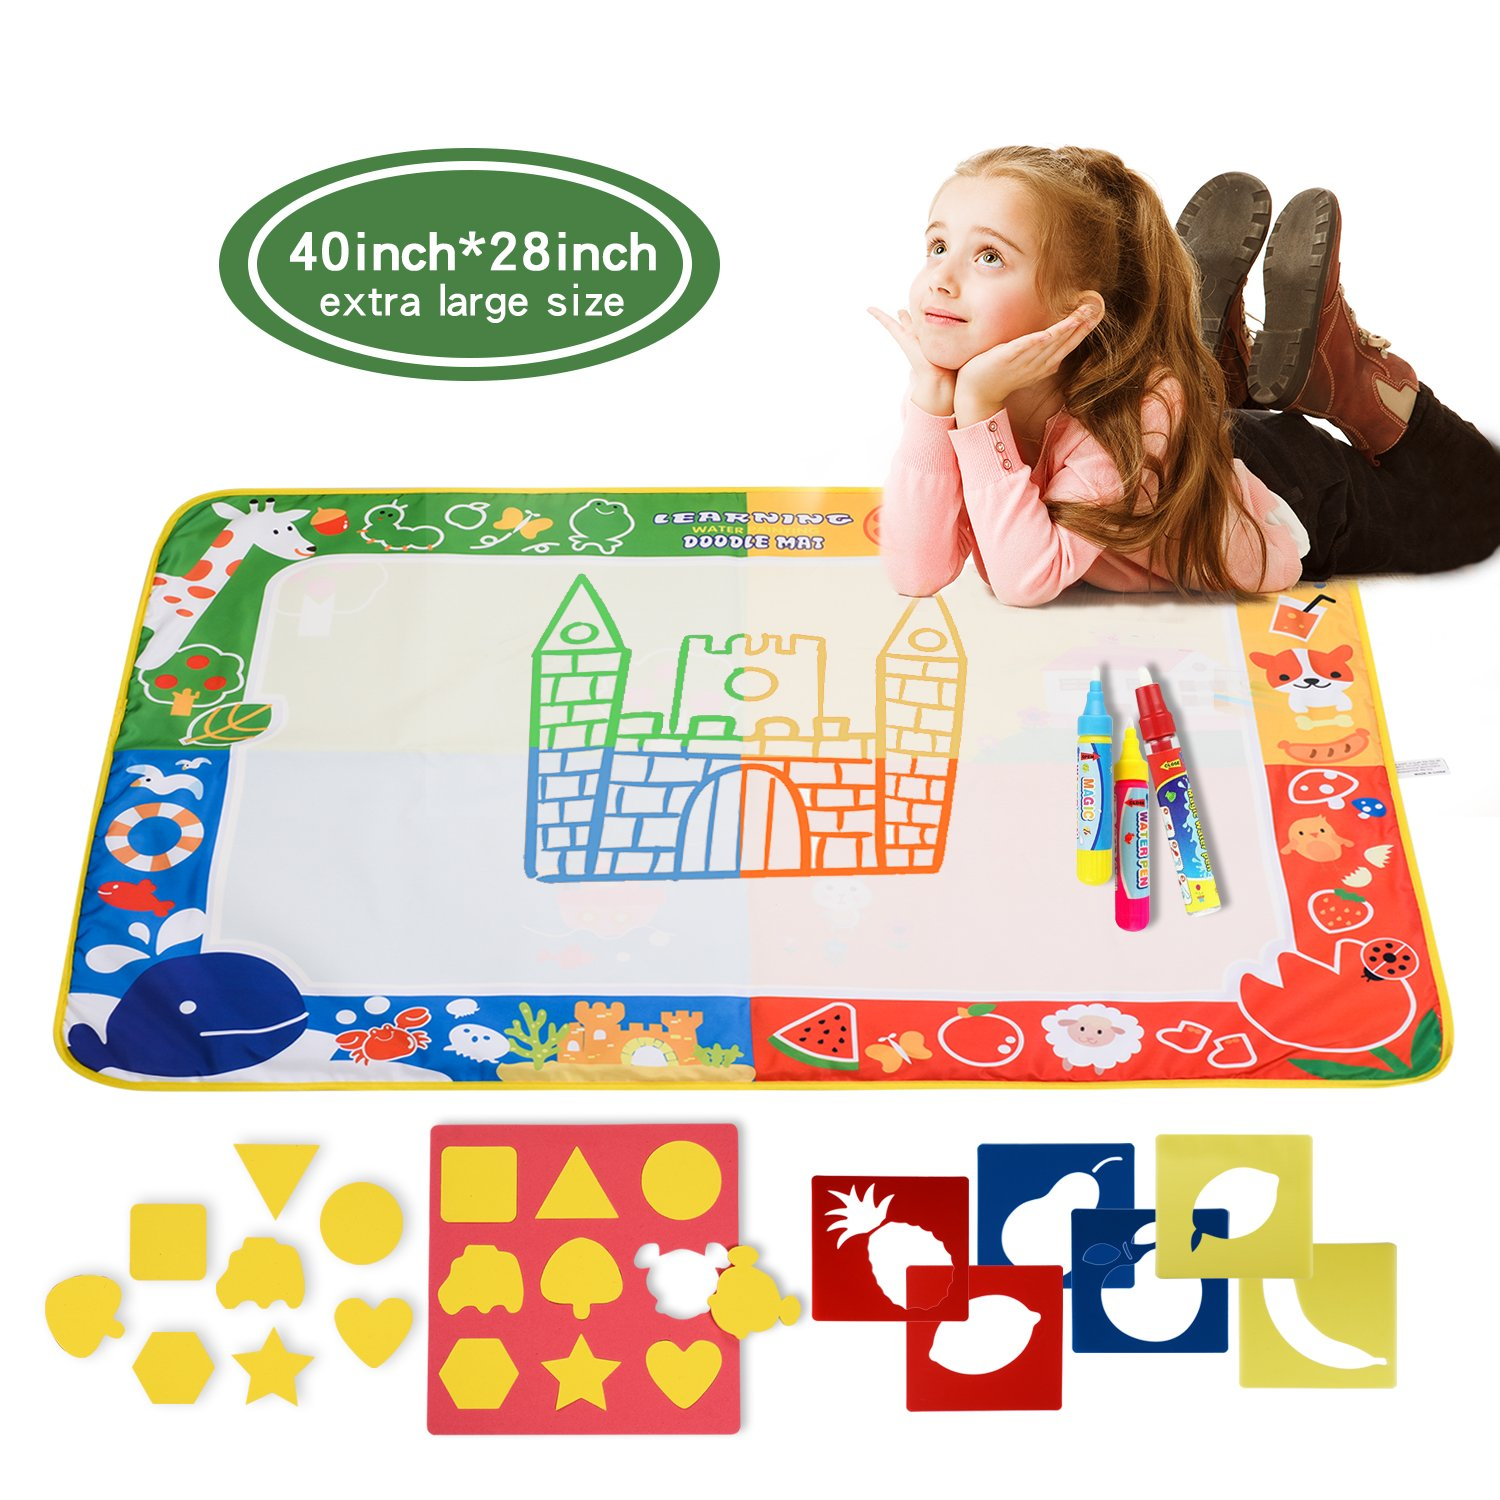 citymama Drawing Mat Doodle Magic mat water Drawing & writing Mat painting board 4 Colors with 3 Magic Drawing Pens and 15 Molds Kids Educational Toy Mat Gift for Children XL Size 40'' x 28'' by citymama (Image #1)